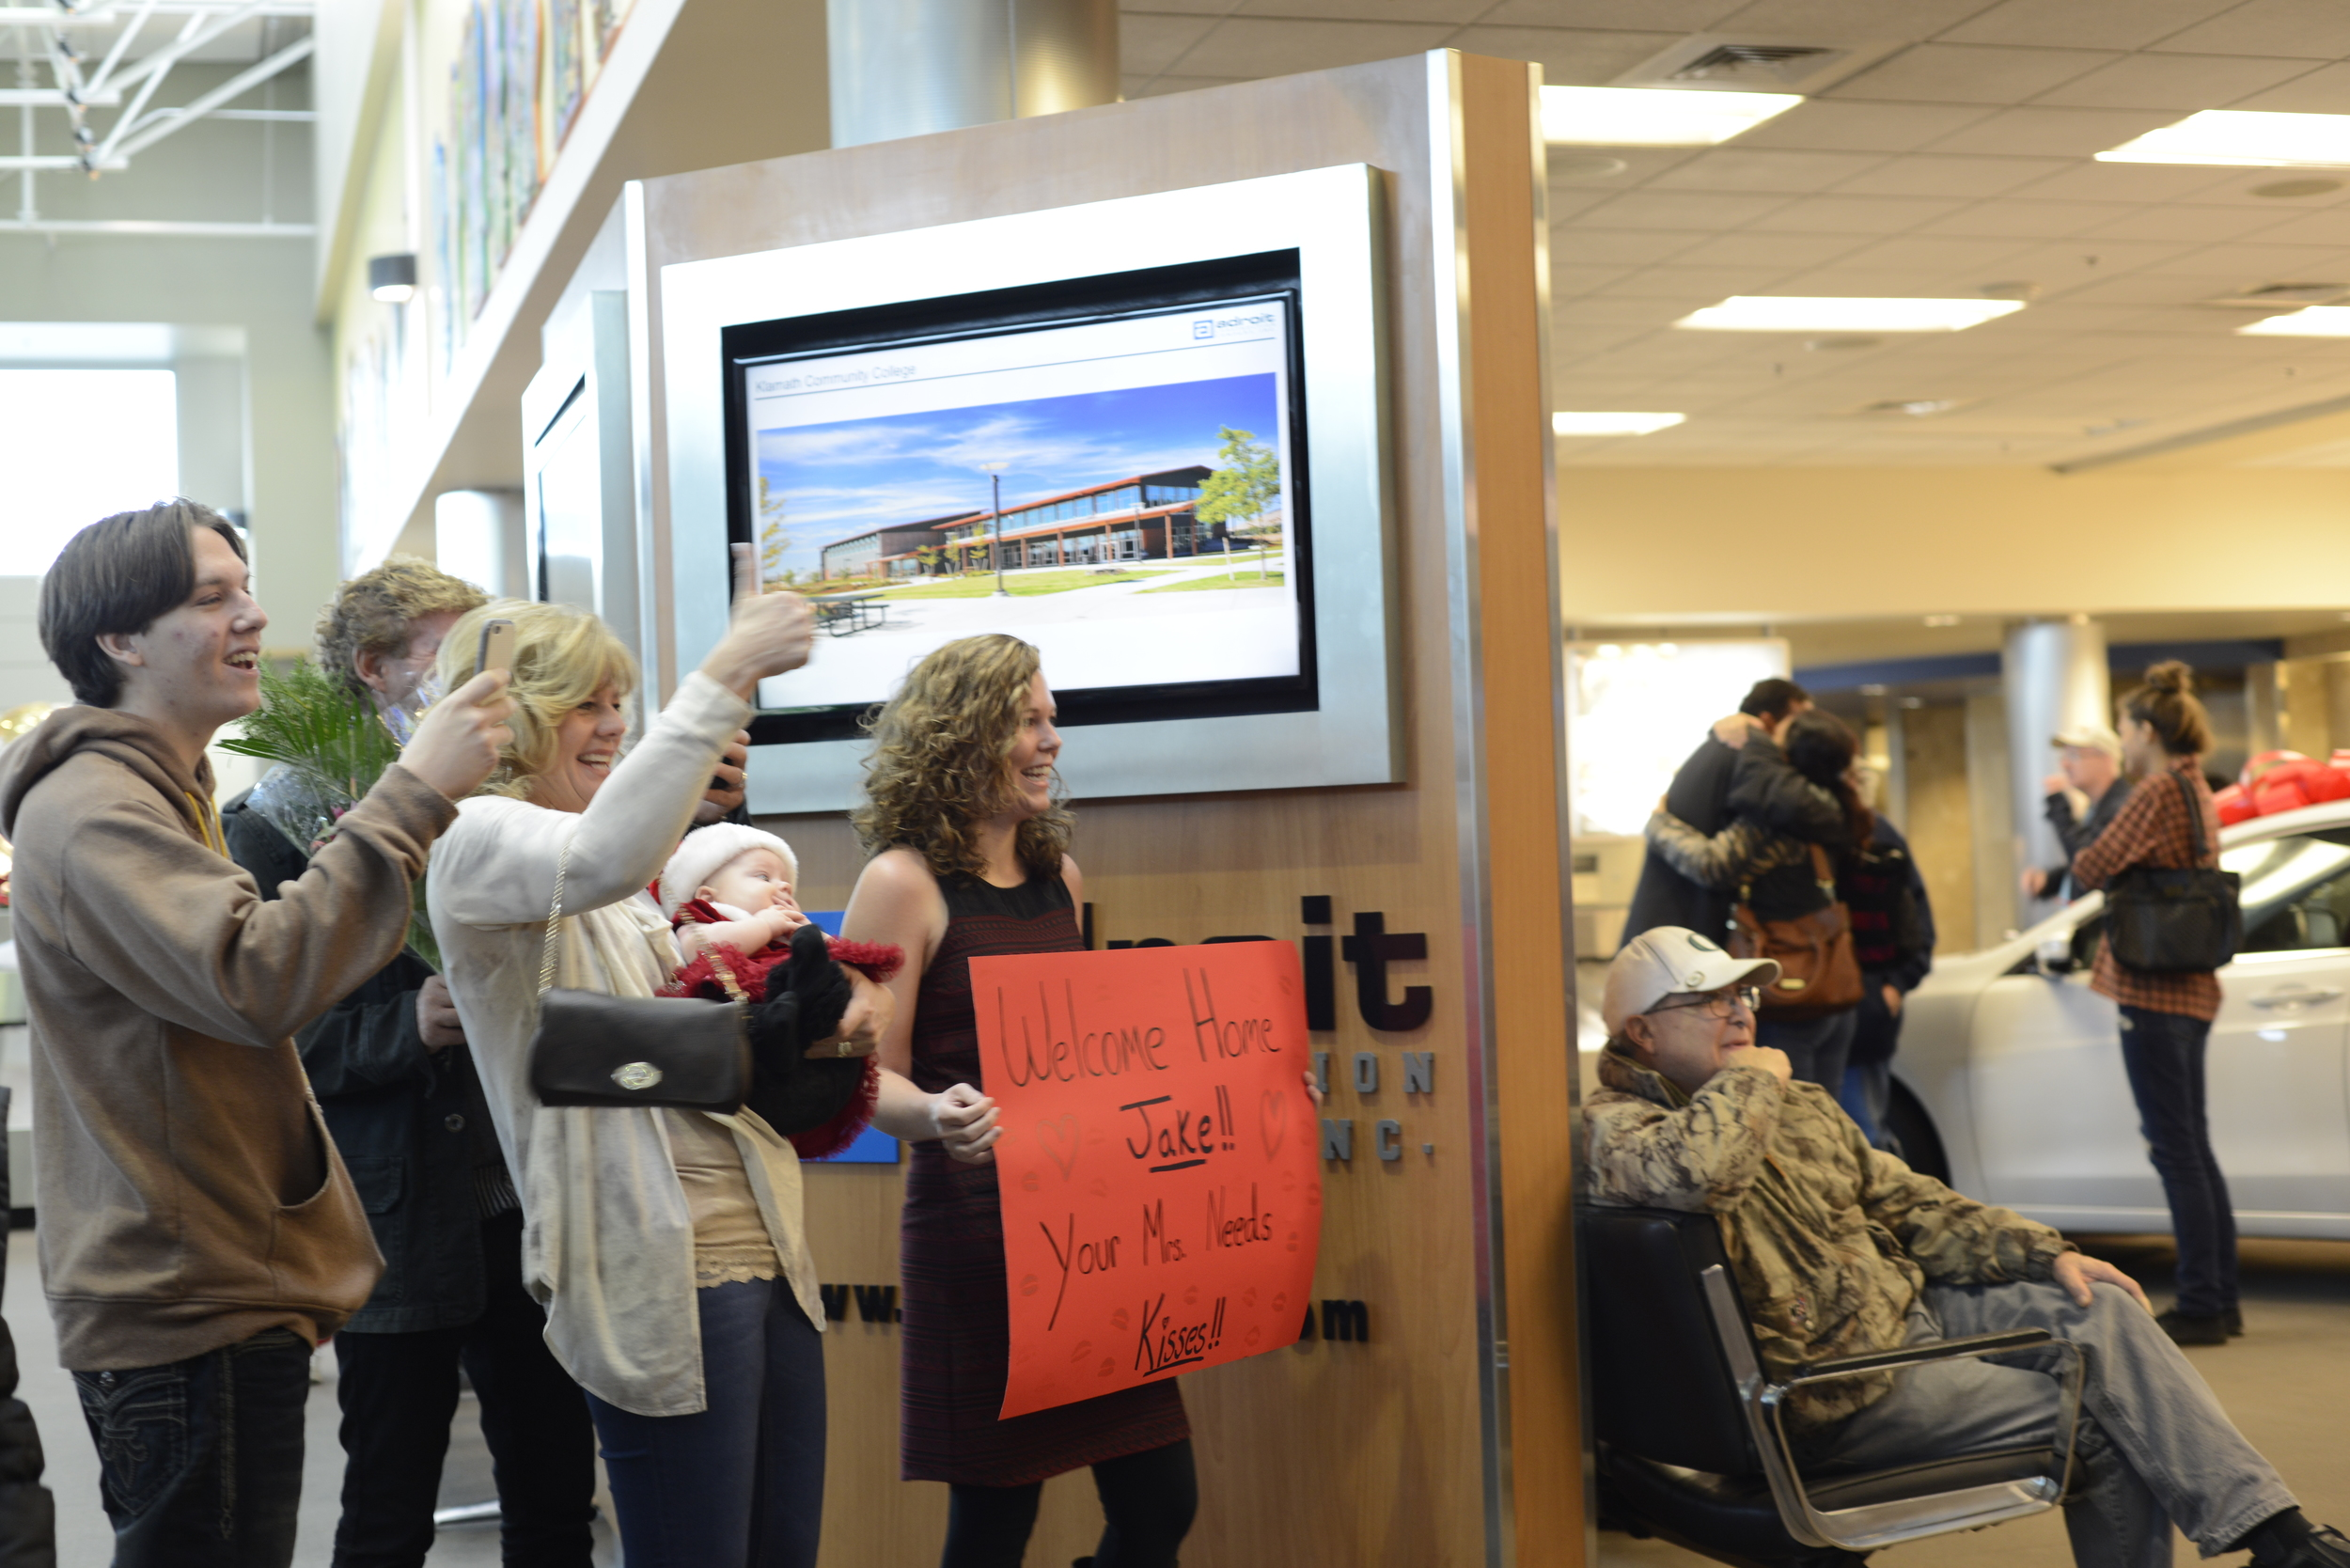 Family and friends greeting Jake.